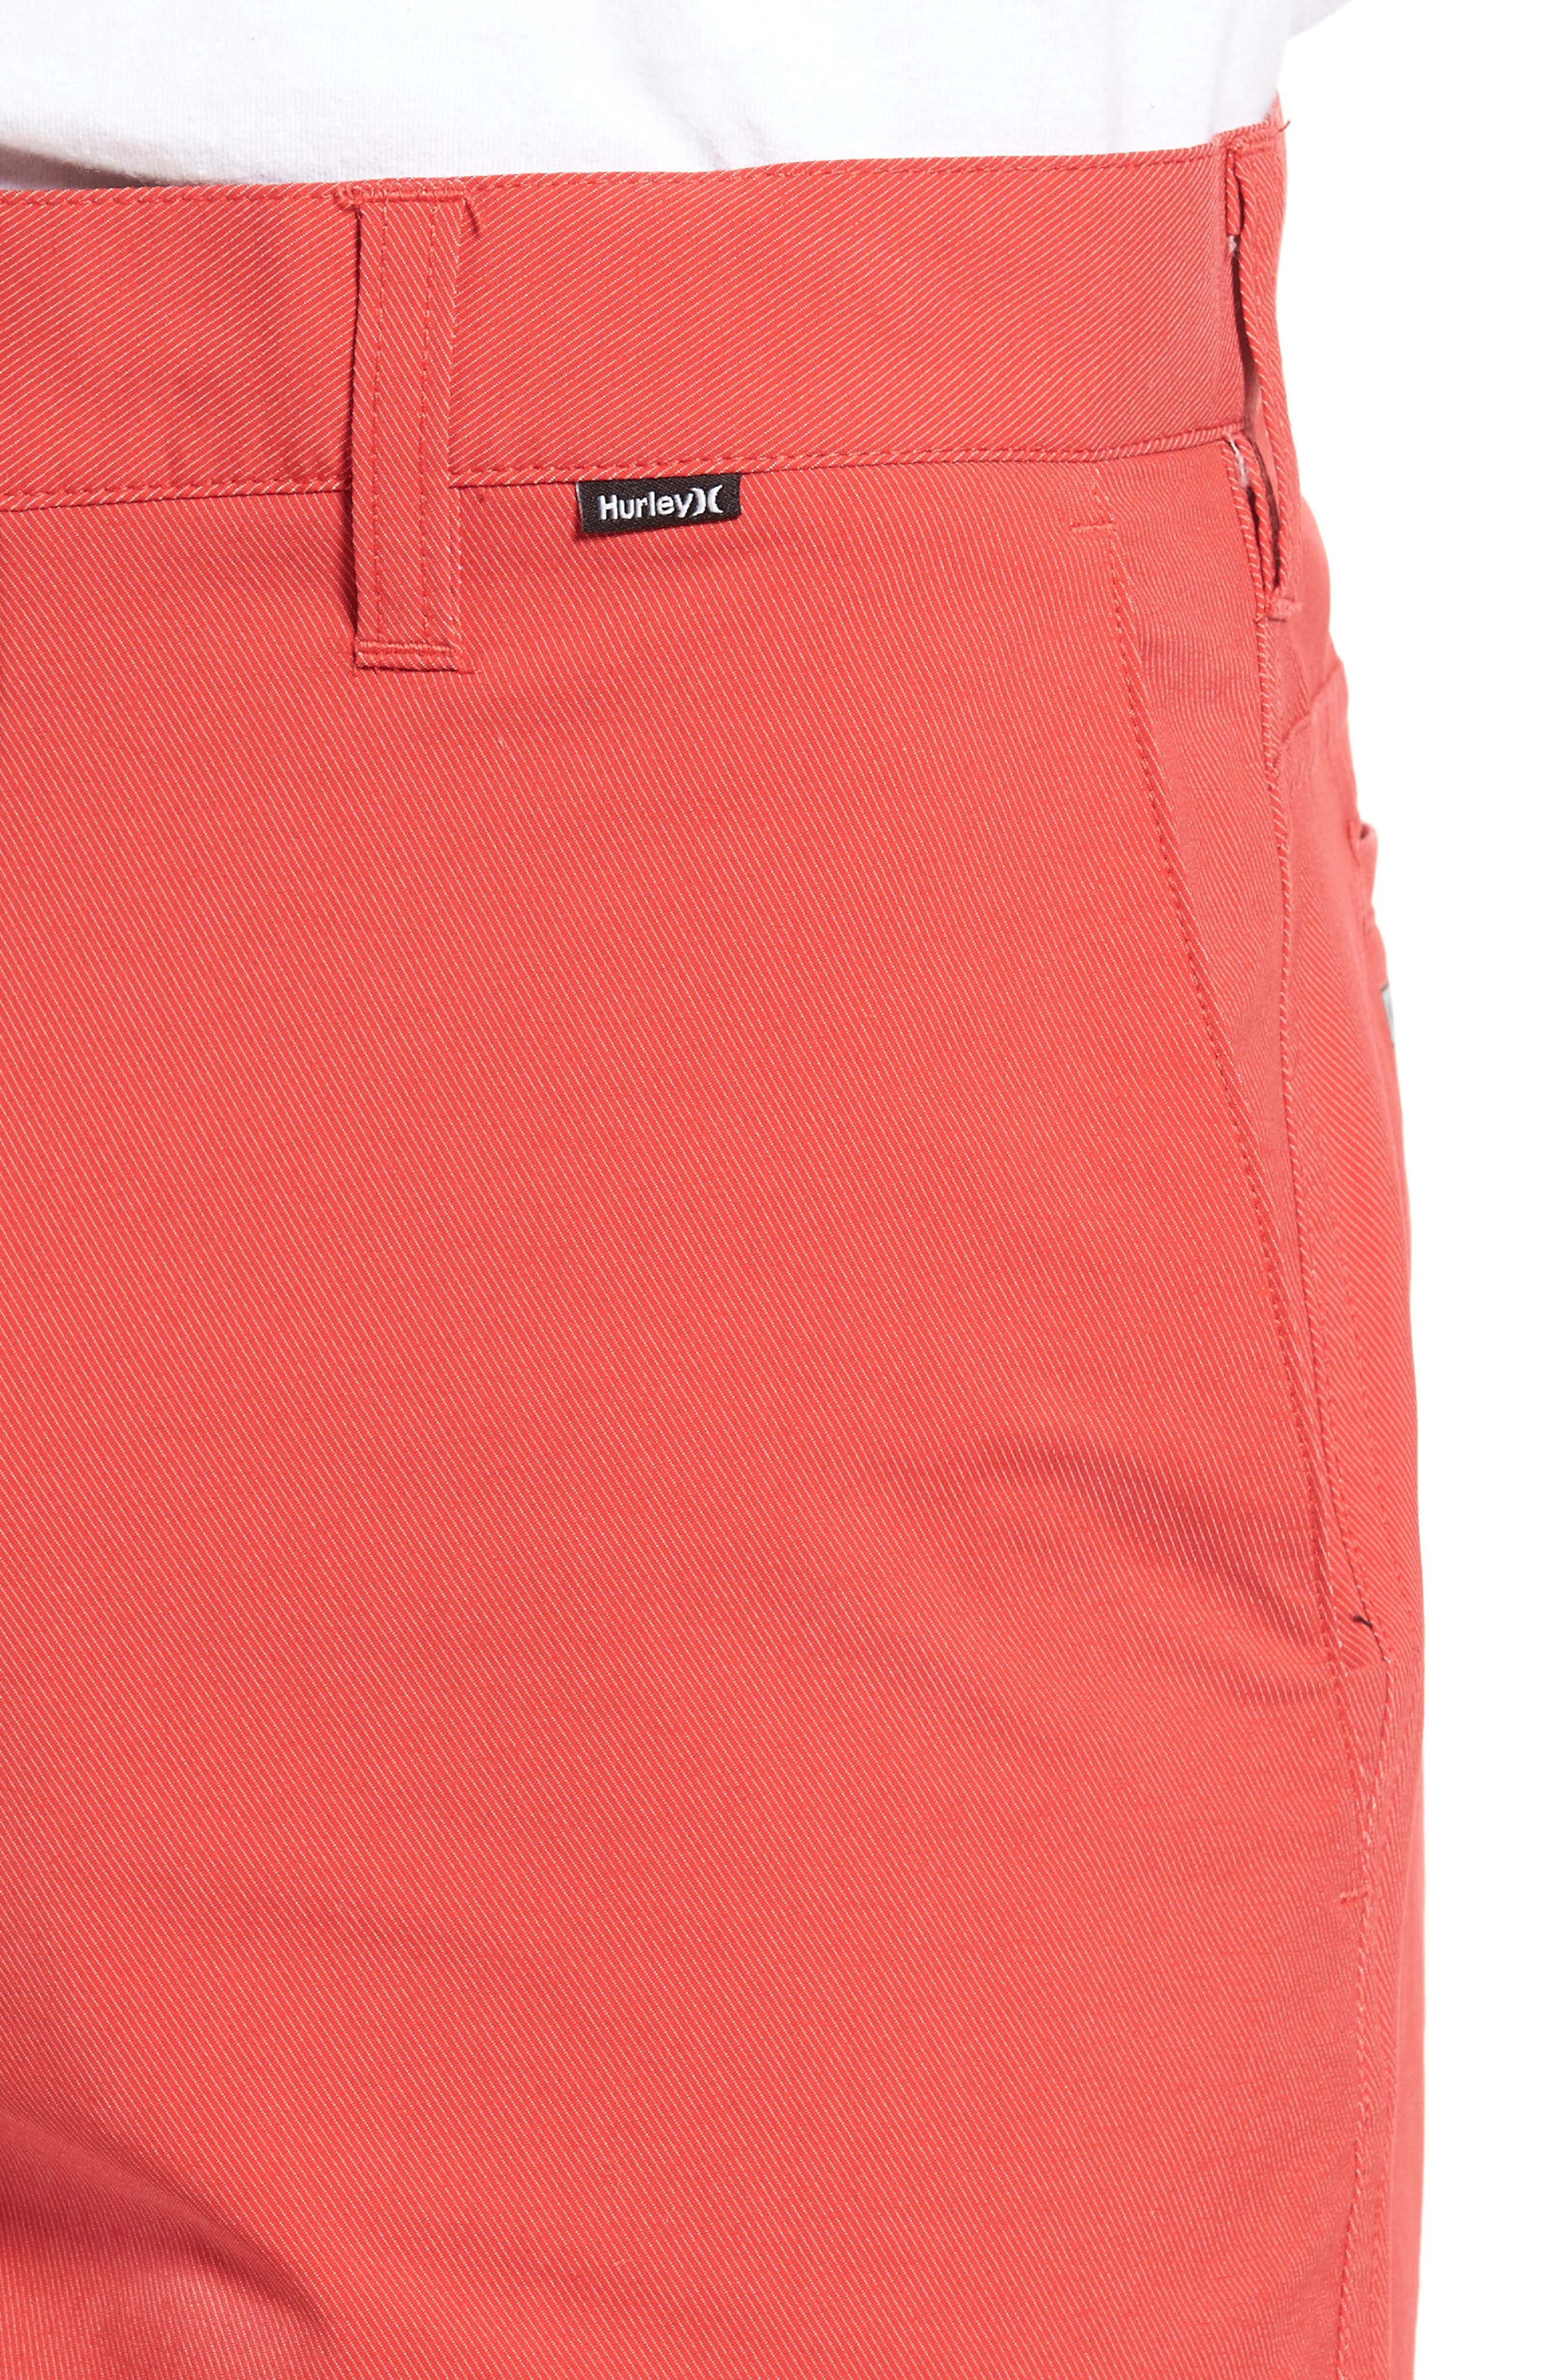 'Dry Out' Dri-FIT<sup>™</sup> Chino Shorts,                             Alternate thumbnail 193, color,